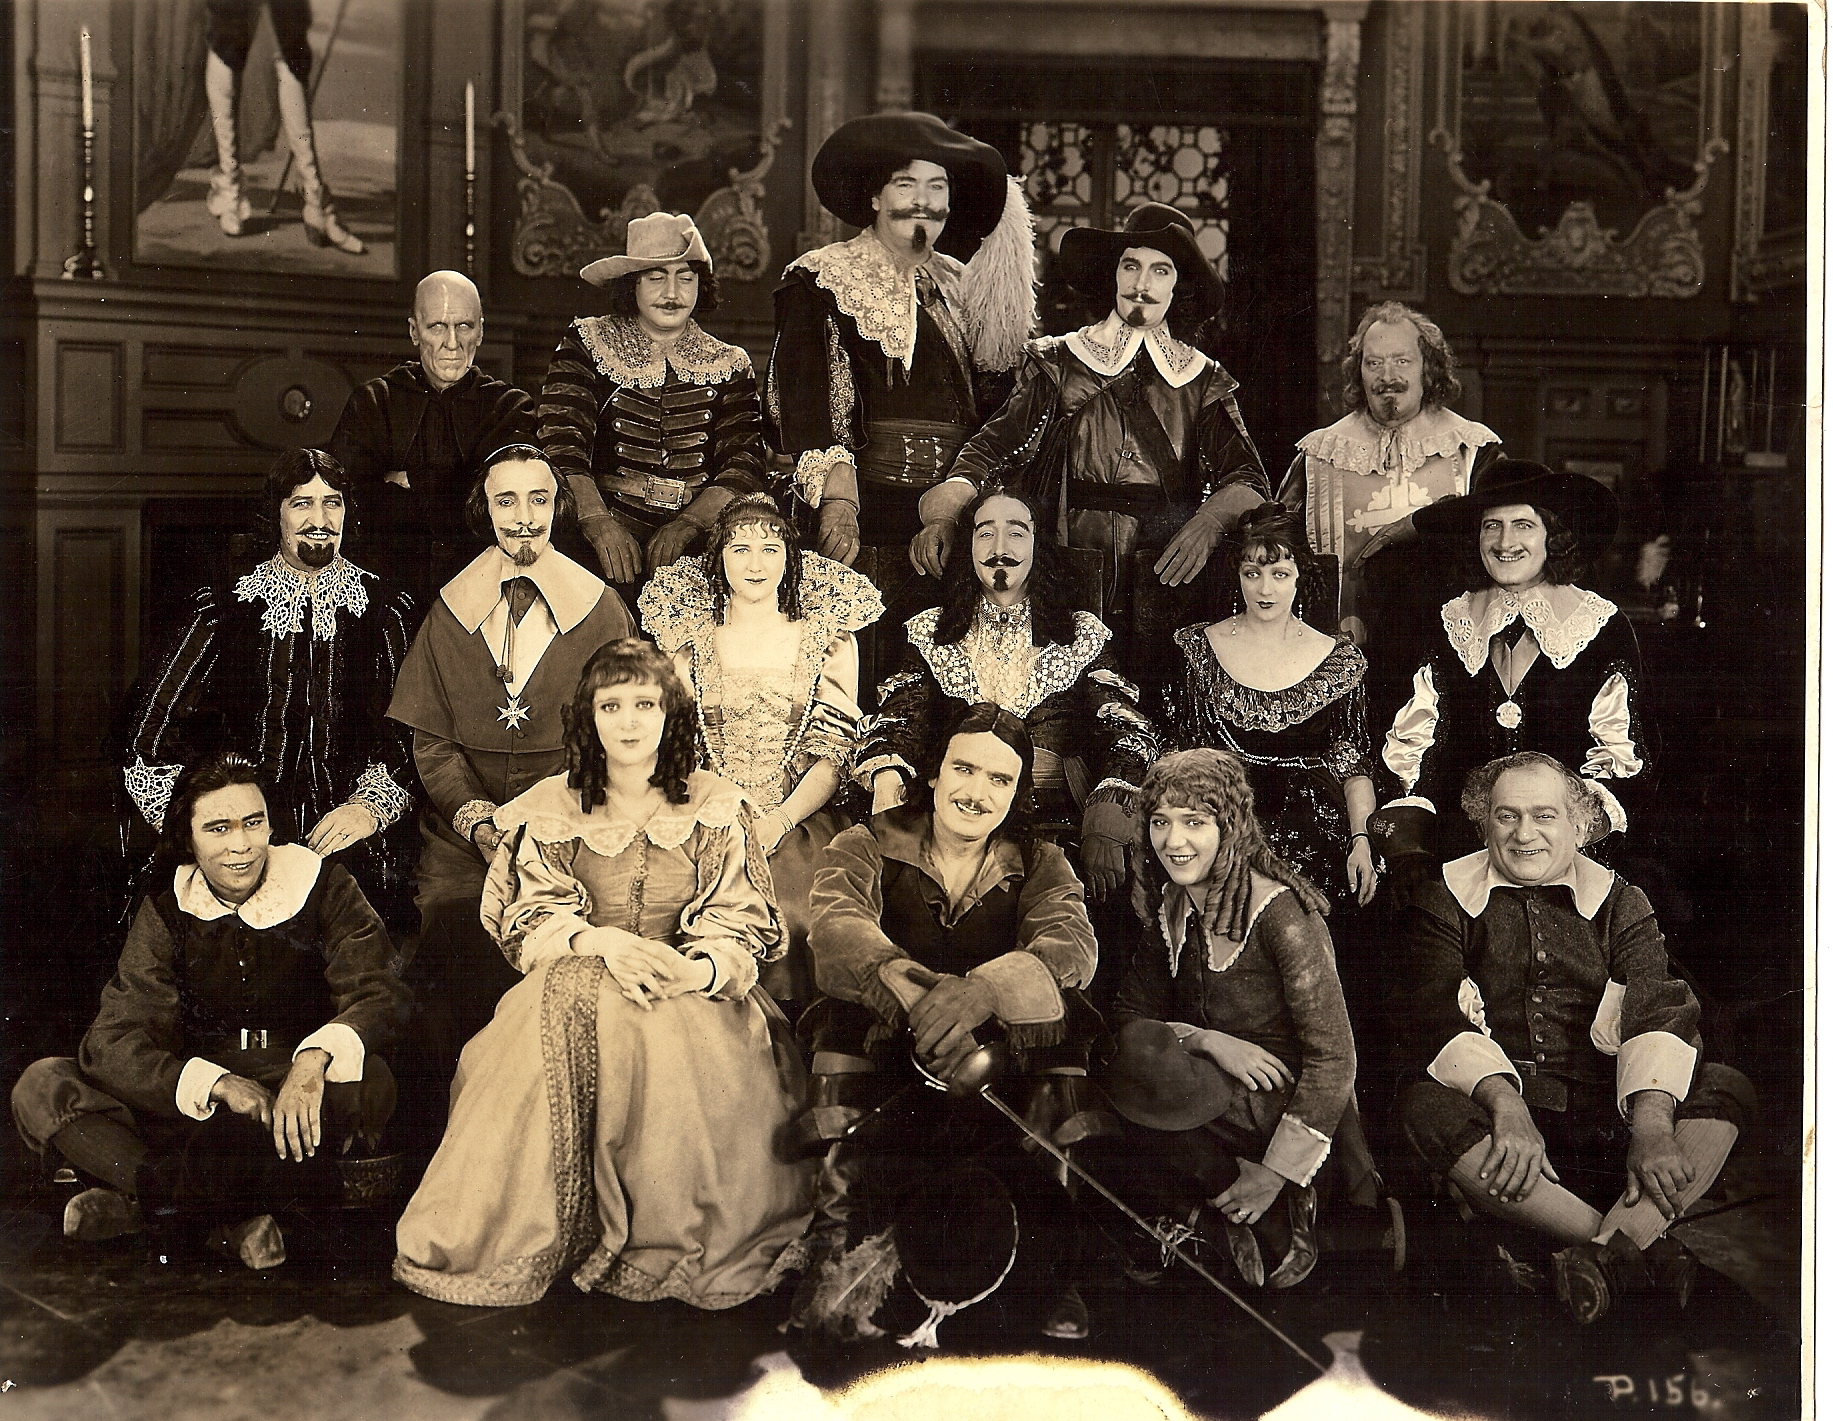 Douglas Fairbanks, Léon Bary, Nigel De Brulier, Marguerite De La Motte, Sidney Franklin, Thomas Holding, Boyd Irwin, Barbara La Marr, Mary MacLaren, Adolphe Menjou, Eugene Pallette, Lon Poff, Willis Robards, George Siegmann, and Charles Stevens in The Three Musketeers (1921)